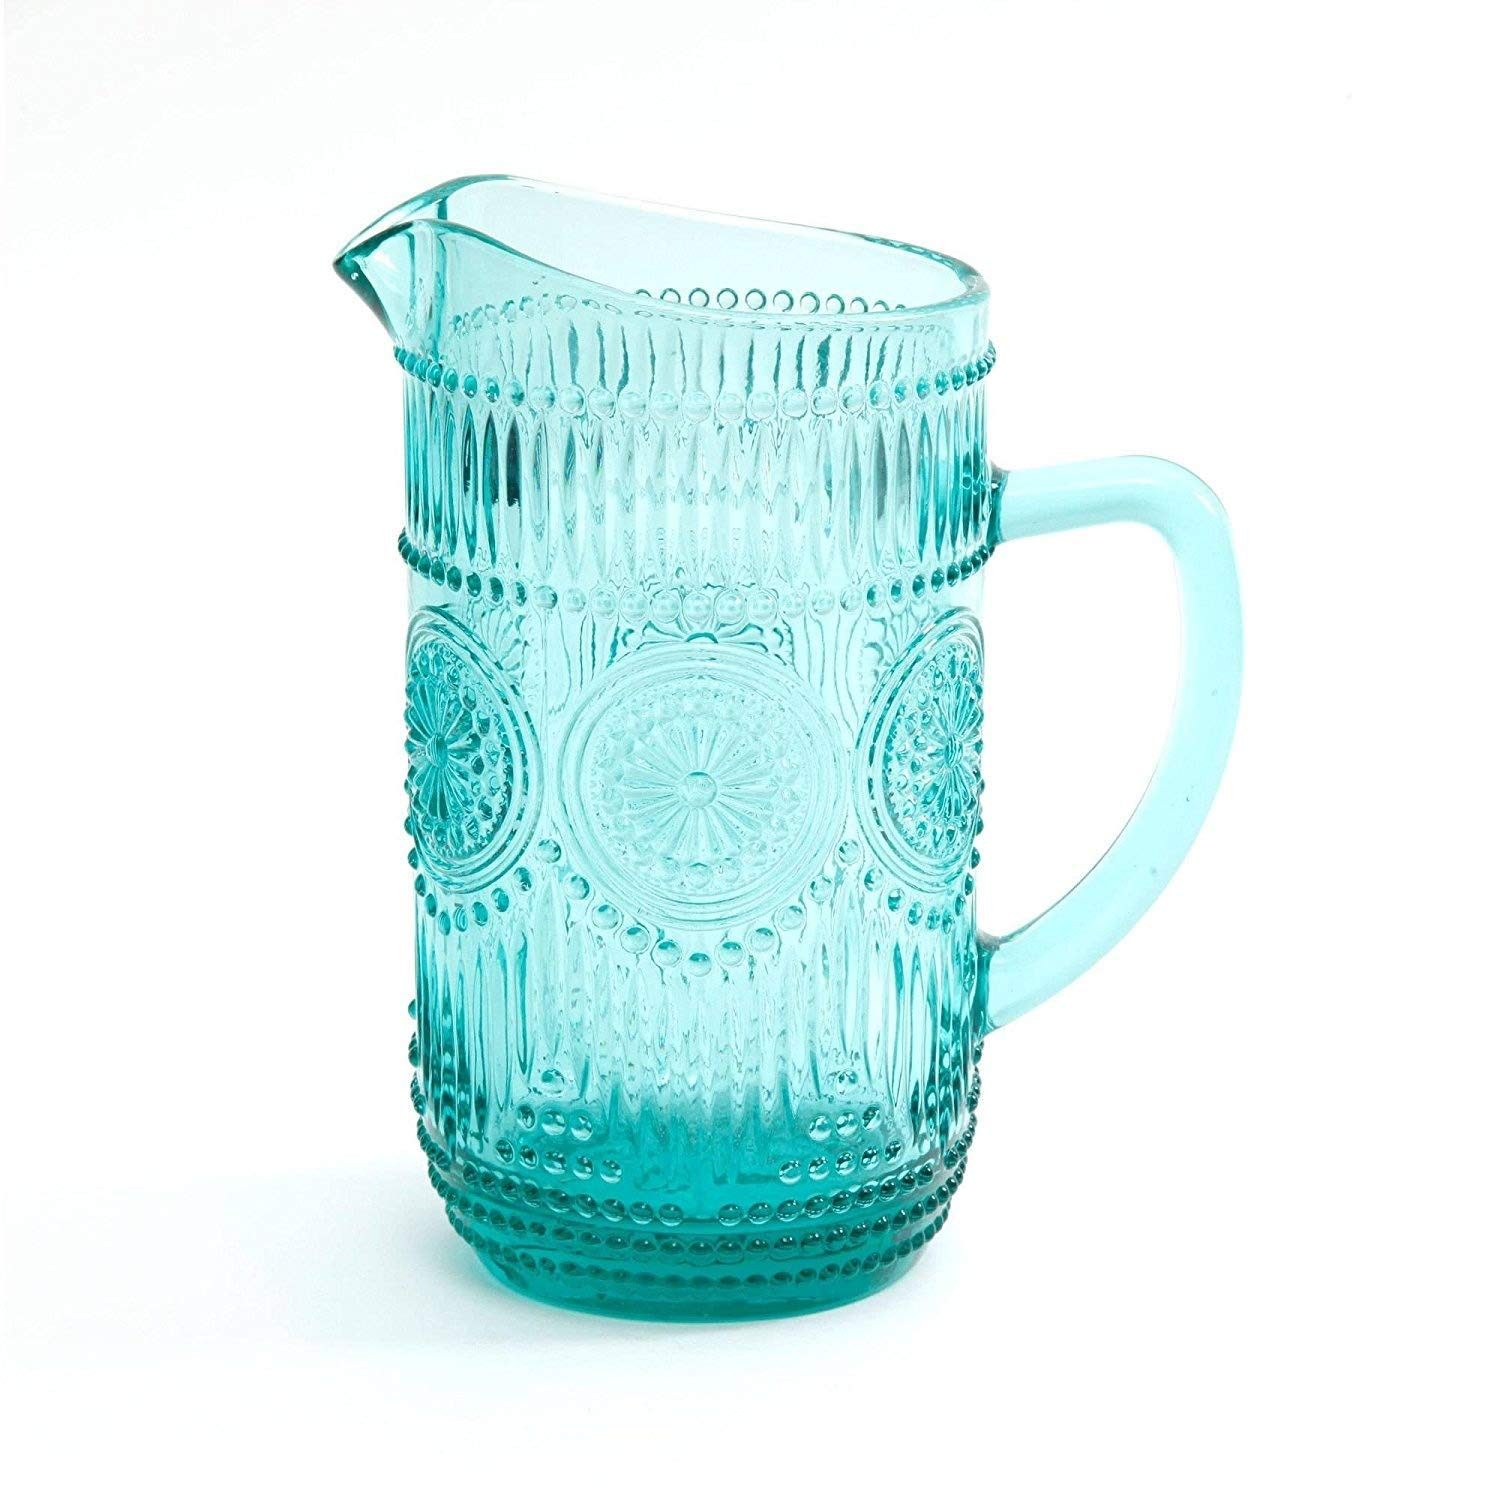 The Pioneer Woman Adeline 1.59-Liter Turquoise Glass Pitcher, Dishwasher Safe 4335464492